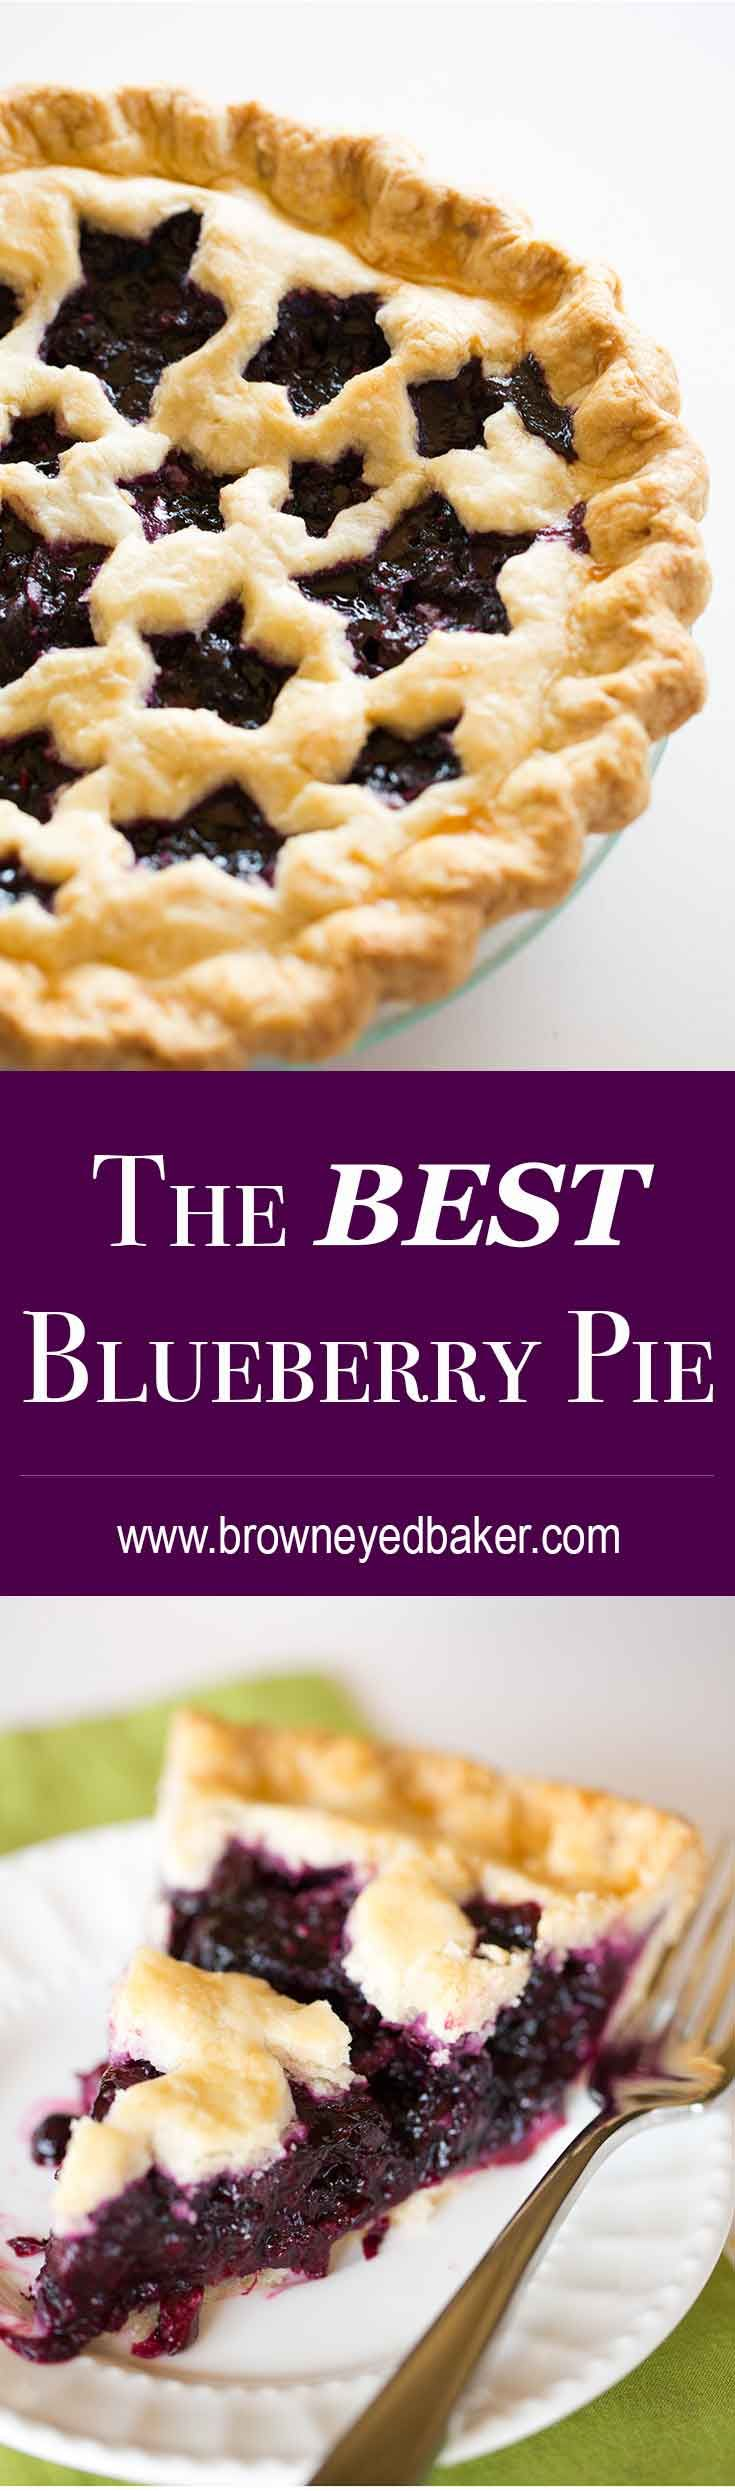 The BEST Blueberry Pie you'll ever make - guaranteed! | browneyedbaker.com